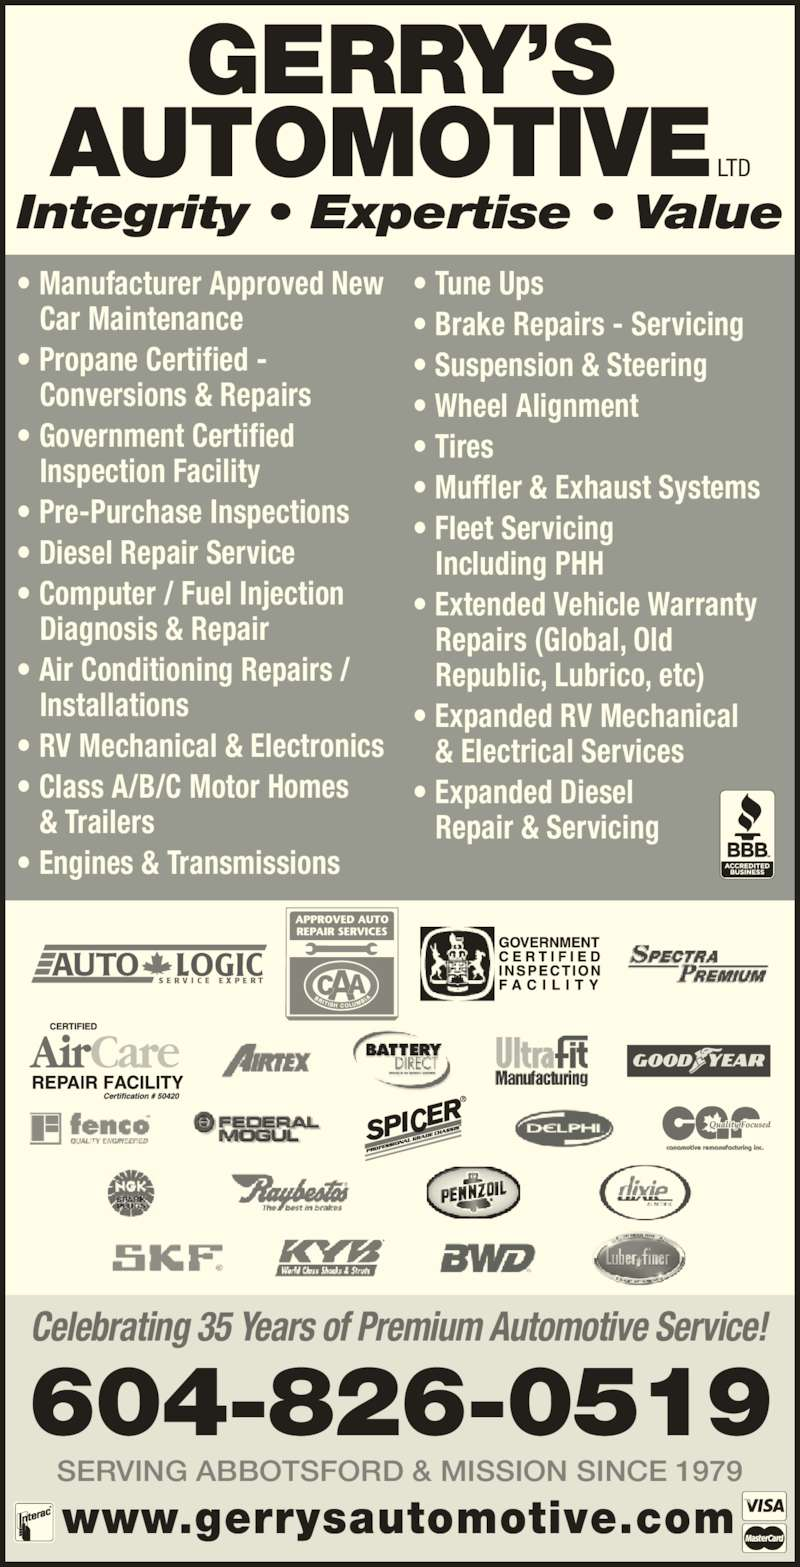 Gerry's Automotive Ltd (604-826-0519) - Display Ad - Celebrating 35 Years of Premium Automotive Service! SERVING ABBOTSFORD & MISSION SINCE 1979 www.gerrysautomotive.com 604-826-0519 Integrity ? Expertise ? Value ? Class A/B/C Motor Homes  & Trailers ? Engines & Transmissions ? Tune Ups ? Brake Repairs - Servicing ? Suspension & Steering ? Wheel Alignment ? Tires ? Muffler & Exhaust Systems ? Fleet Servicing  Including PHH ? Extended Vehicle Warranty  Repairs (Global, Old  Republic, Lubrico, etc) ? Expanded RV Mechanical  & Electrical Services ? Expanded Diesel Repair & Servicing GERRY?S Car Maintenance ? Propane Certified -  Conversions & Repairs ? Government Certified  ? Pre-Purchase Inspections ? Diesel Repair Service ? Computer / Fuel Injection  Diagnosis & Repair ? Air Conditioning Repairs /  Inspection Facility ? Manufacturer Approved New  Installations ? RV Mechanical & Electronics AUTOMOTIVE LTD